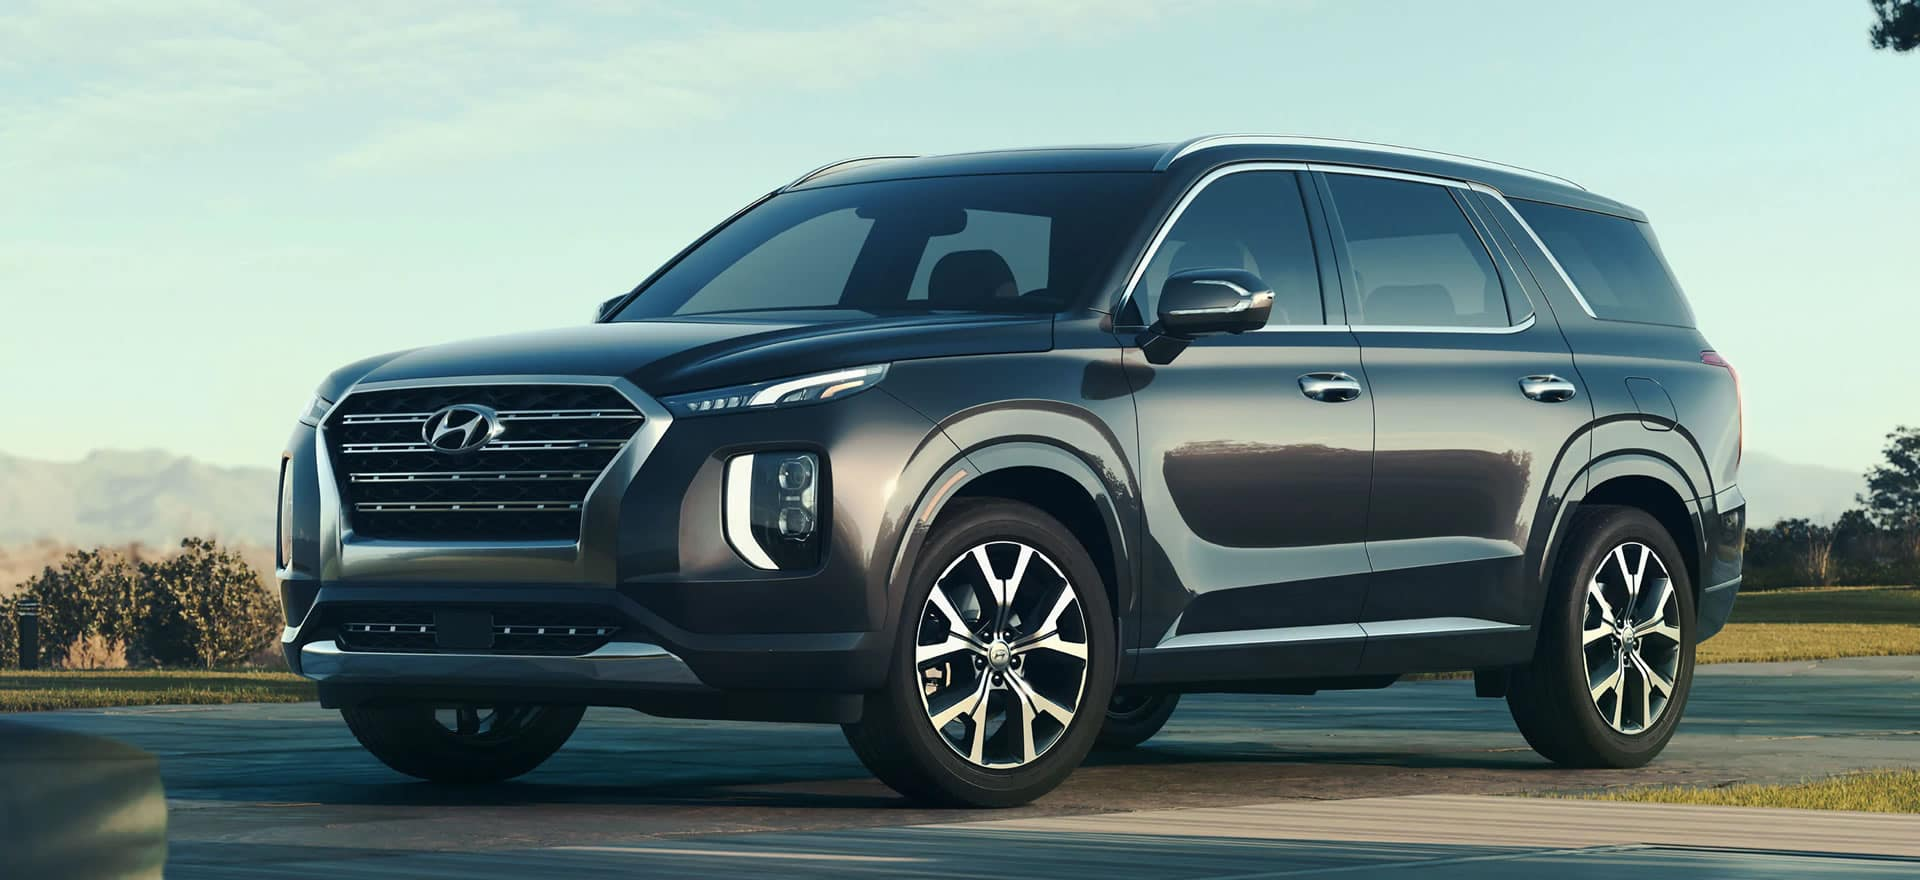 The all new 2020 Hyundai Palisade